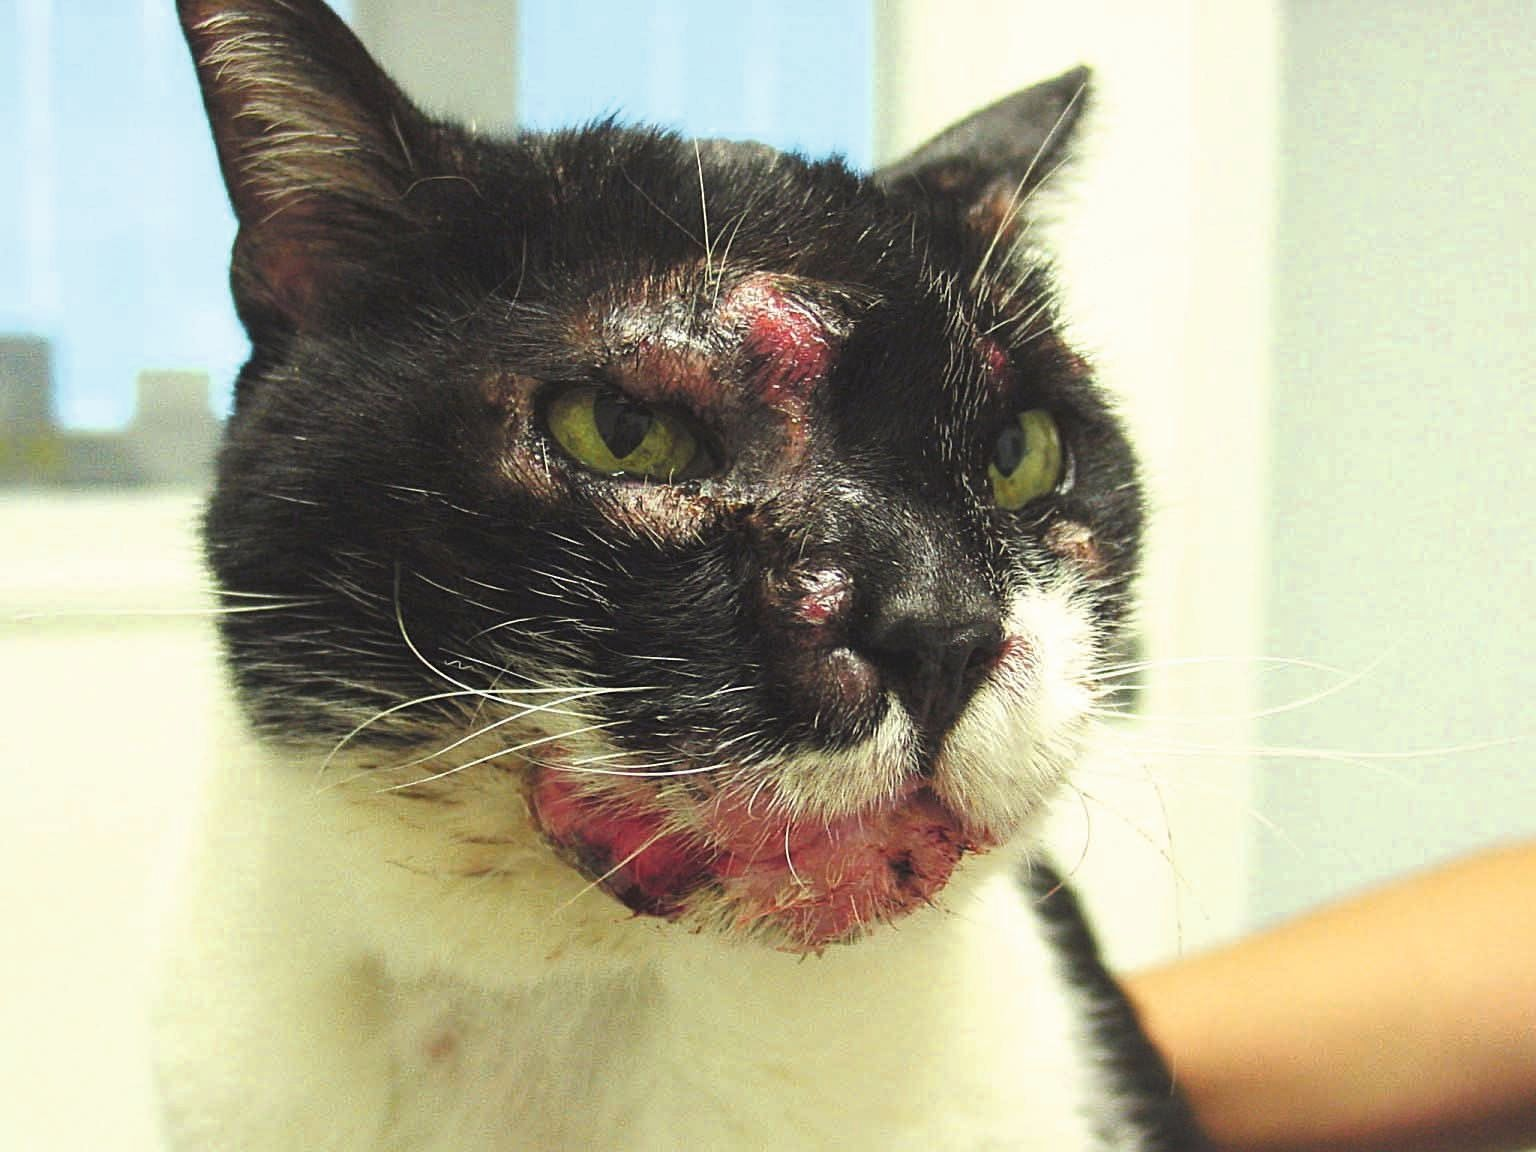 CNEL in a cat with facial distribution of multiple adjacent to coalescing plaques and nodules. The skin is partially alopecic, eroded and ulcerated, especially over the right eye and mandibular lip fold.